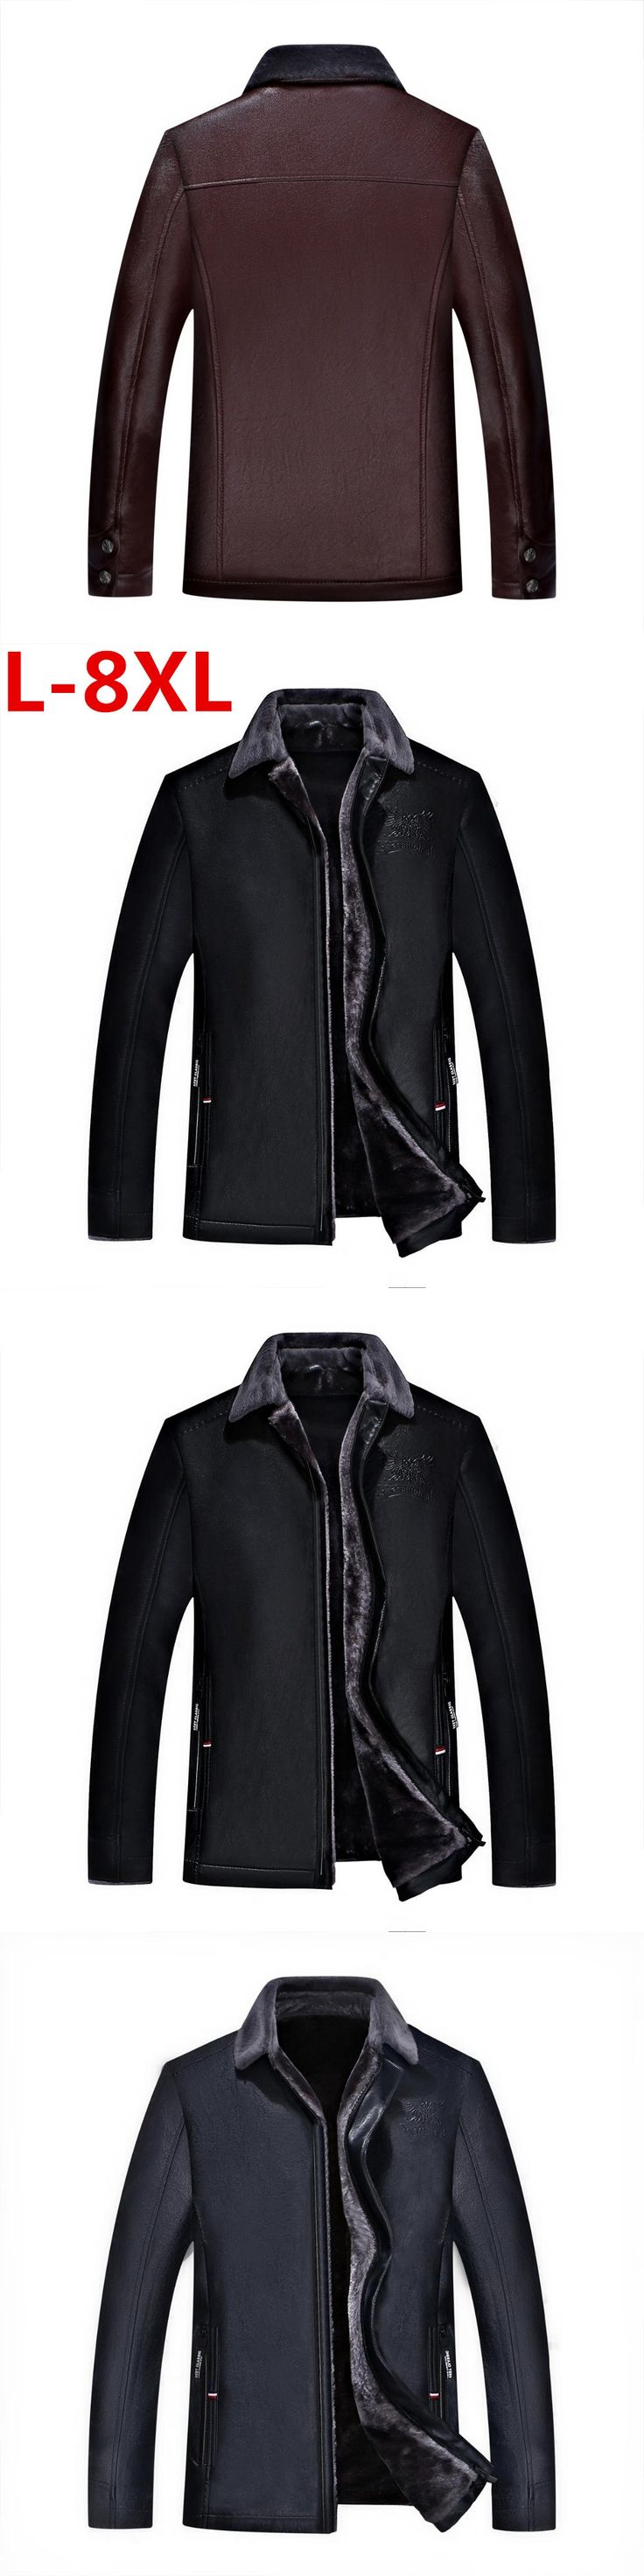 new 8XL 7XL 6XL 5XL 4XL Hot Sale Winter Thick Leather Garment Casual flocking Leather Jacket Men's Clothing Leather Jacket Men